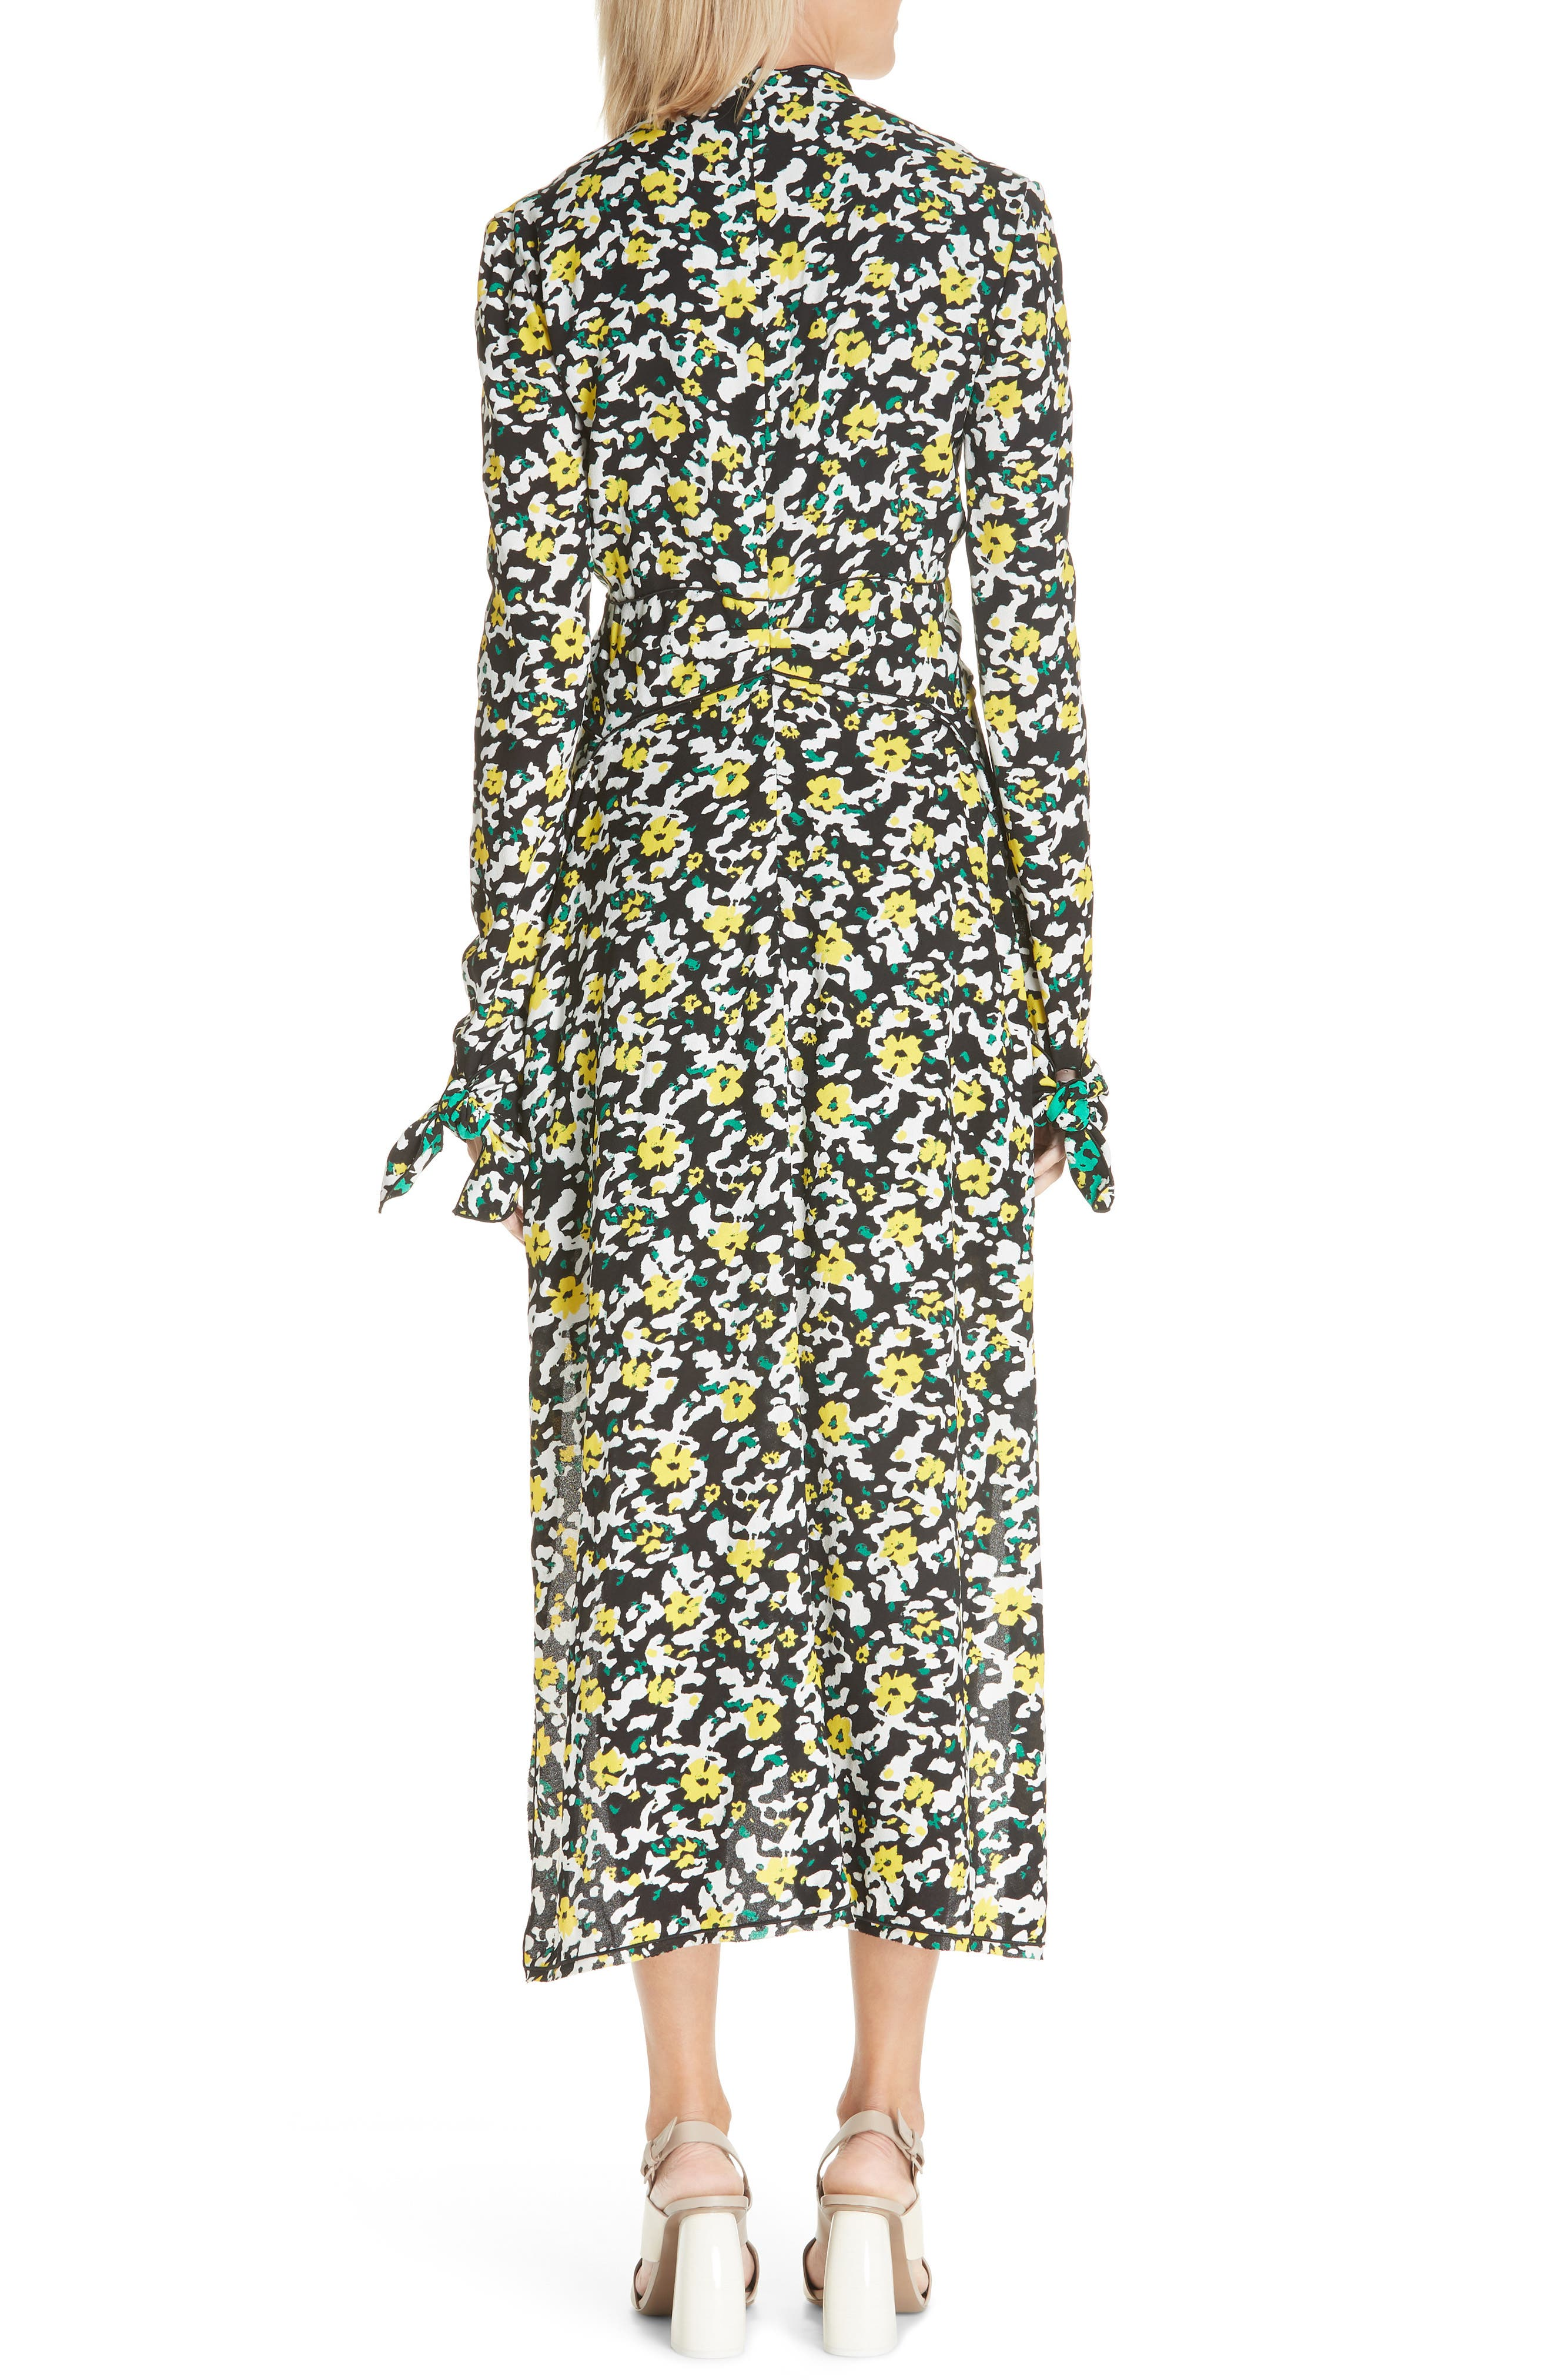 PROENZA SCHOULER, Floral Print Knotted Midi Dress, Alternate thumbnail 2, color, WHITE WILDFLOWER